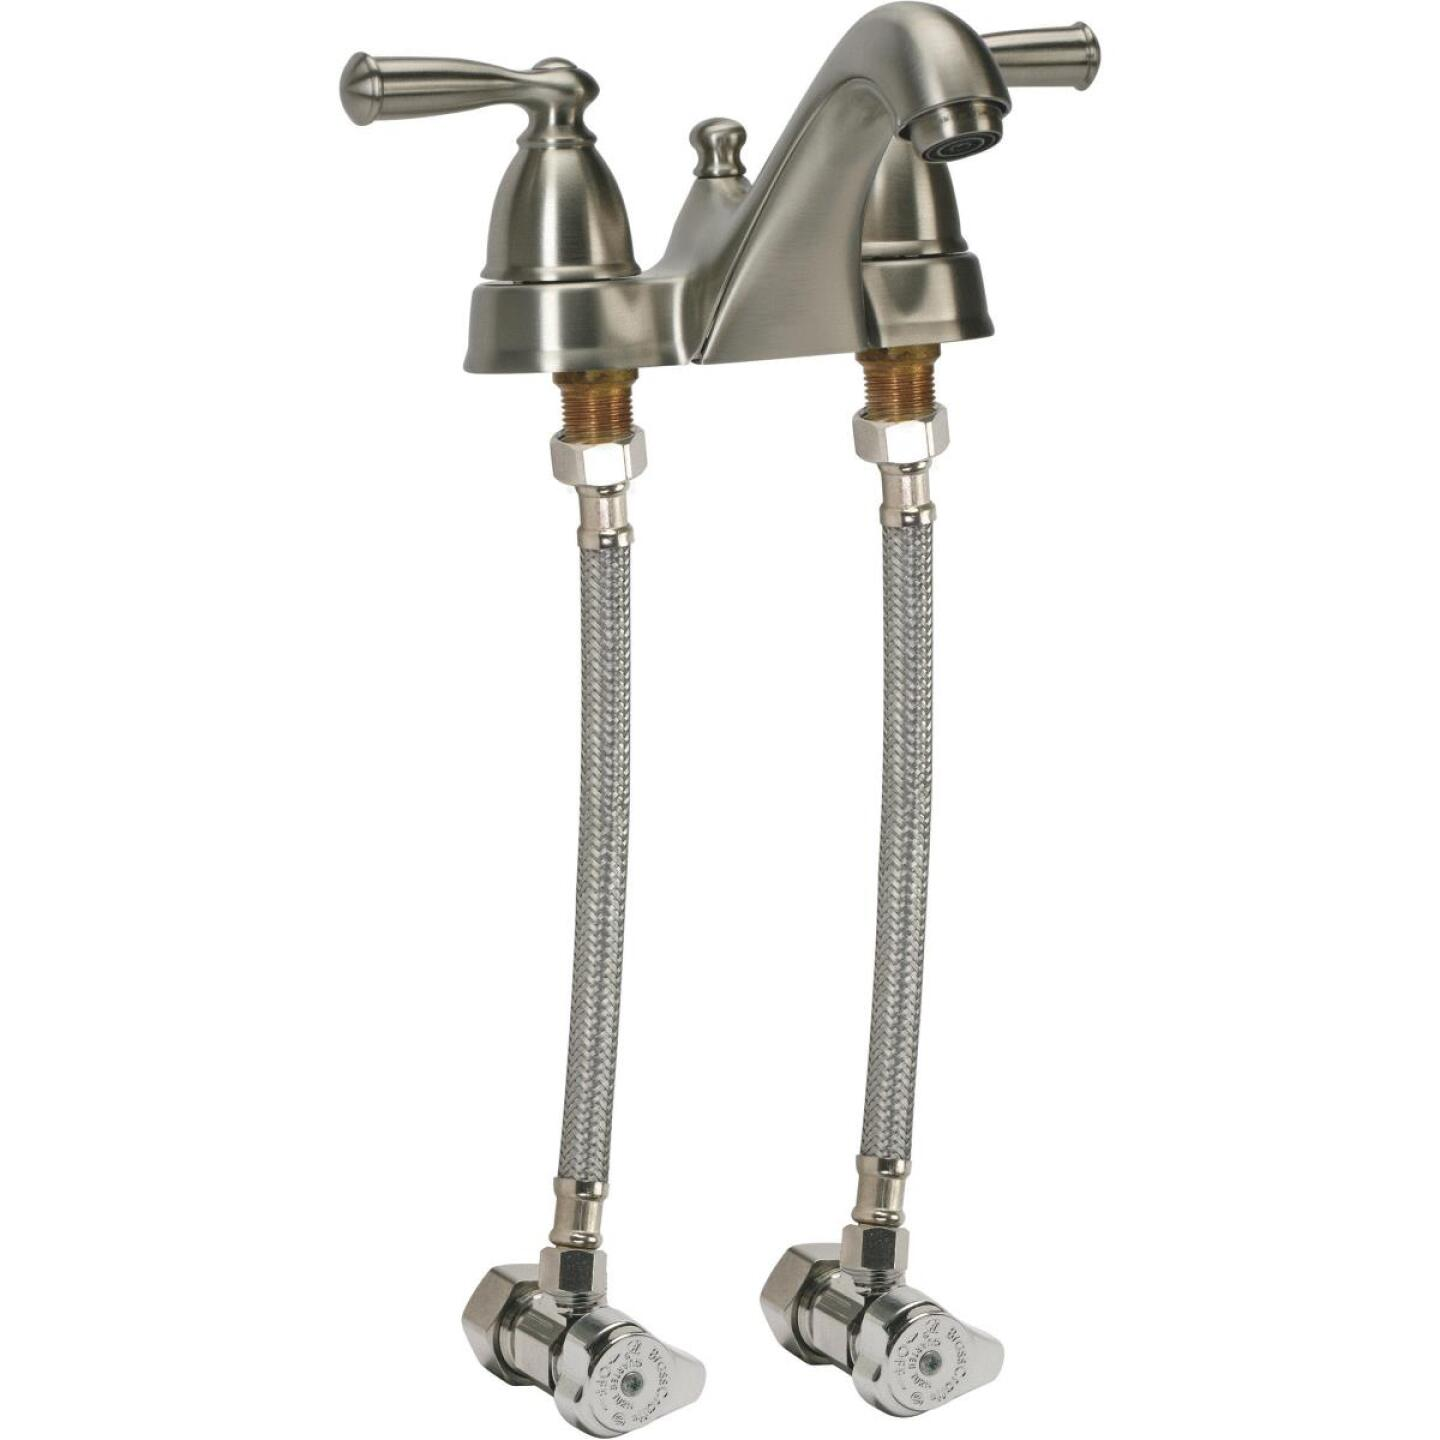 Fluidmaster 3/8 F X 1/2 In. F X 16 In. L Stainless Steel Faucet Connector Image 3